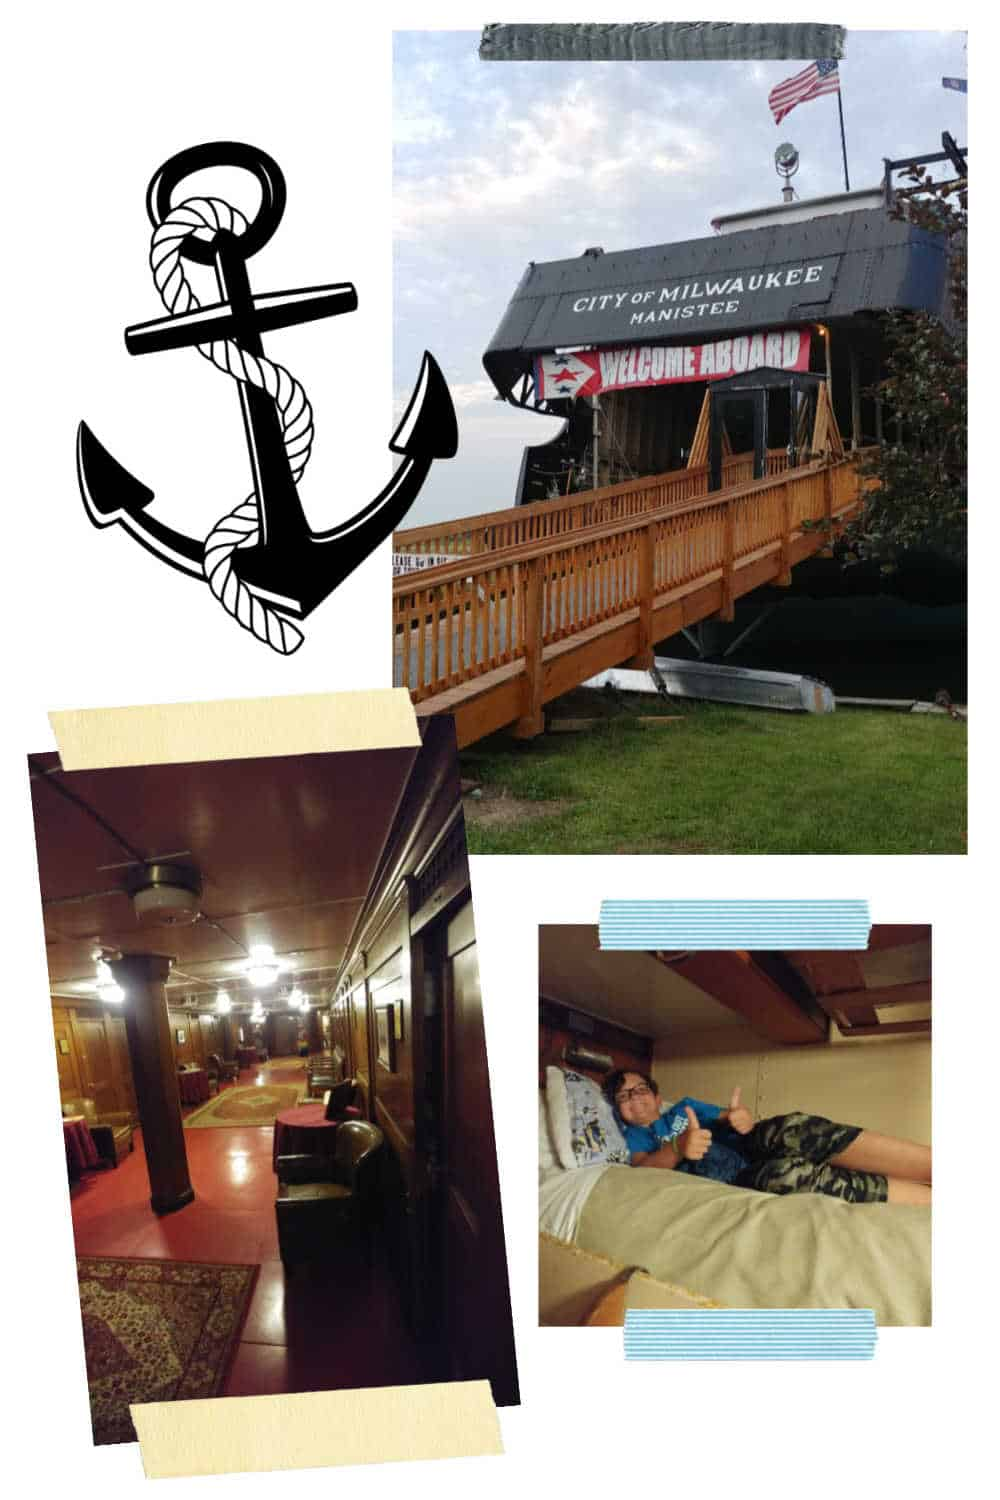 Picture collage of the fun hotel SS Milwaukee boatel in Manistee Michigan